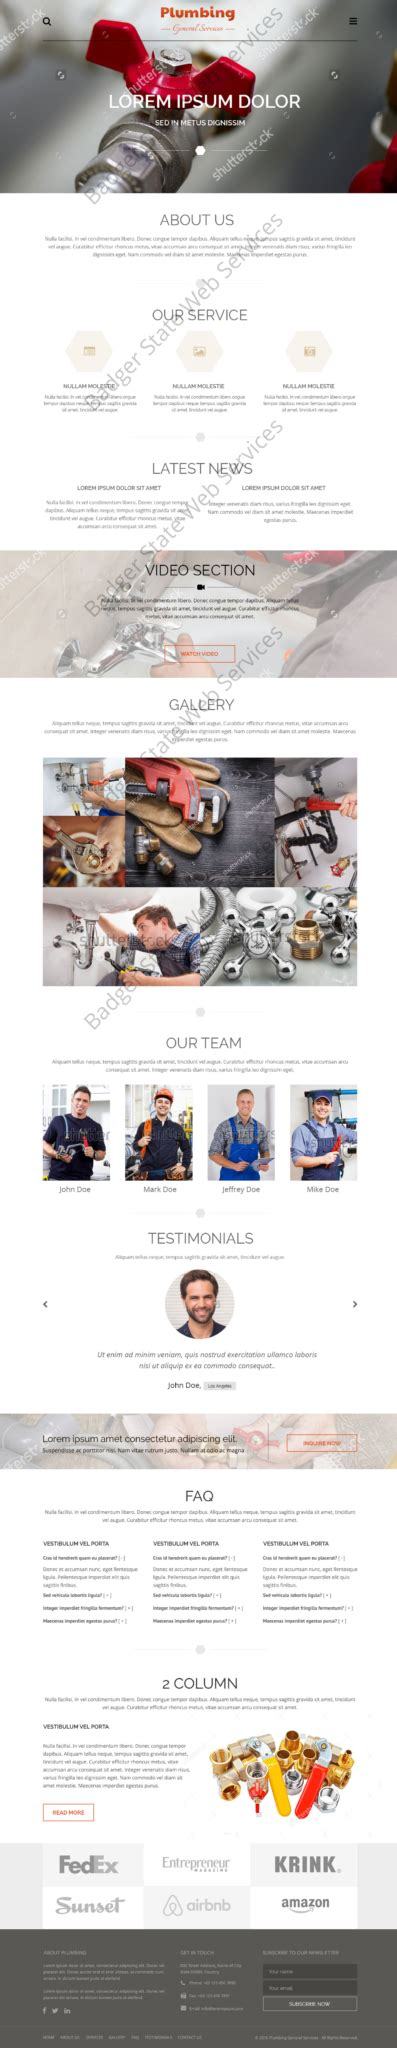 plumbing web design mockup n bsws sem local web